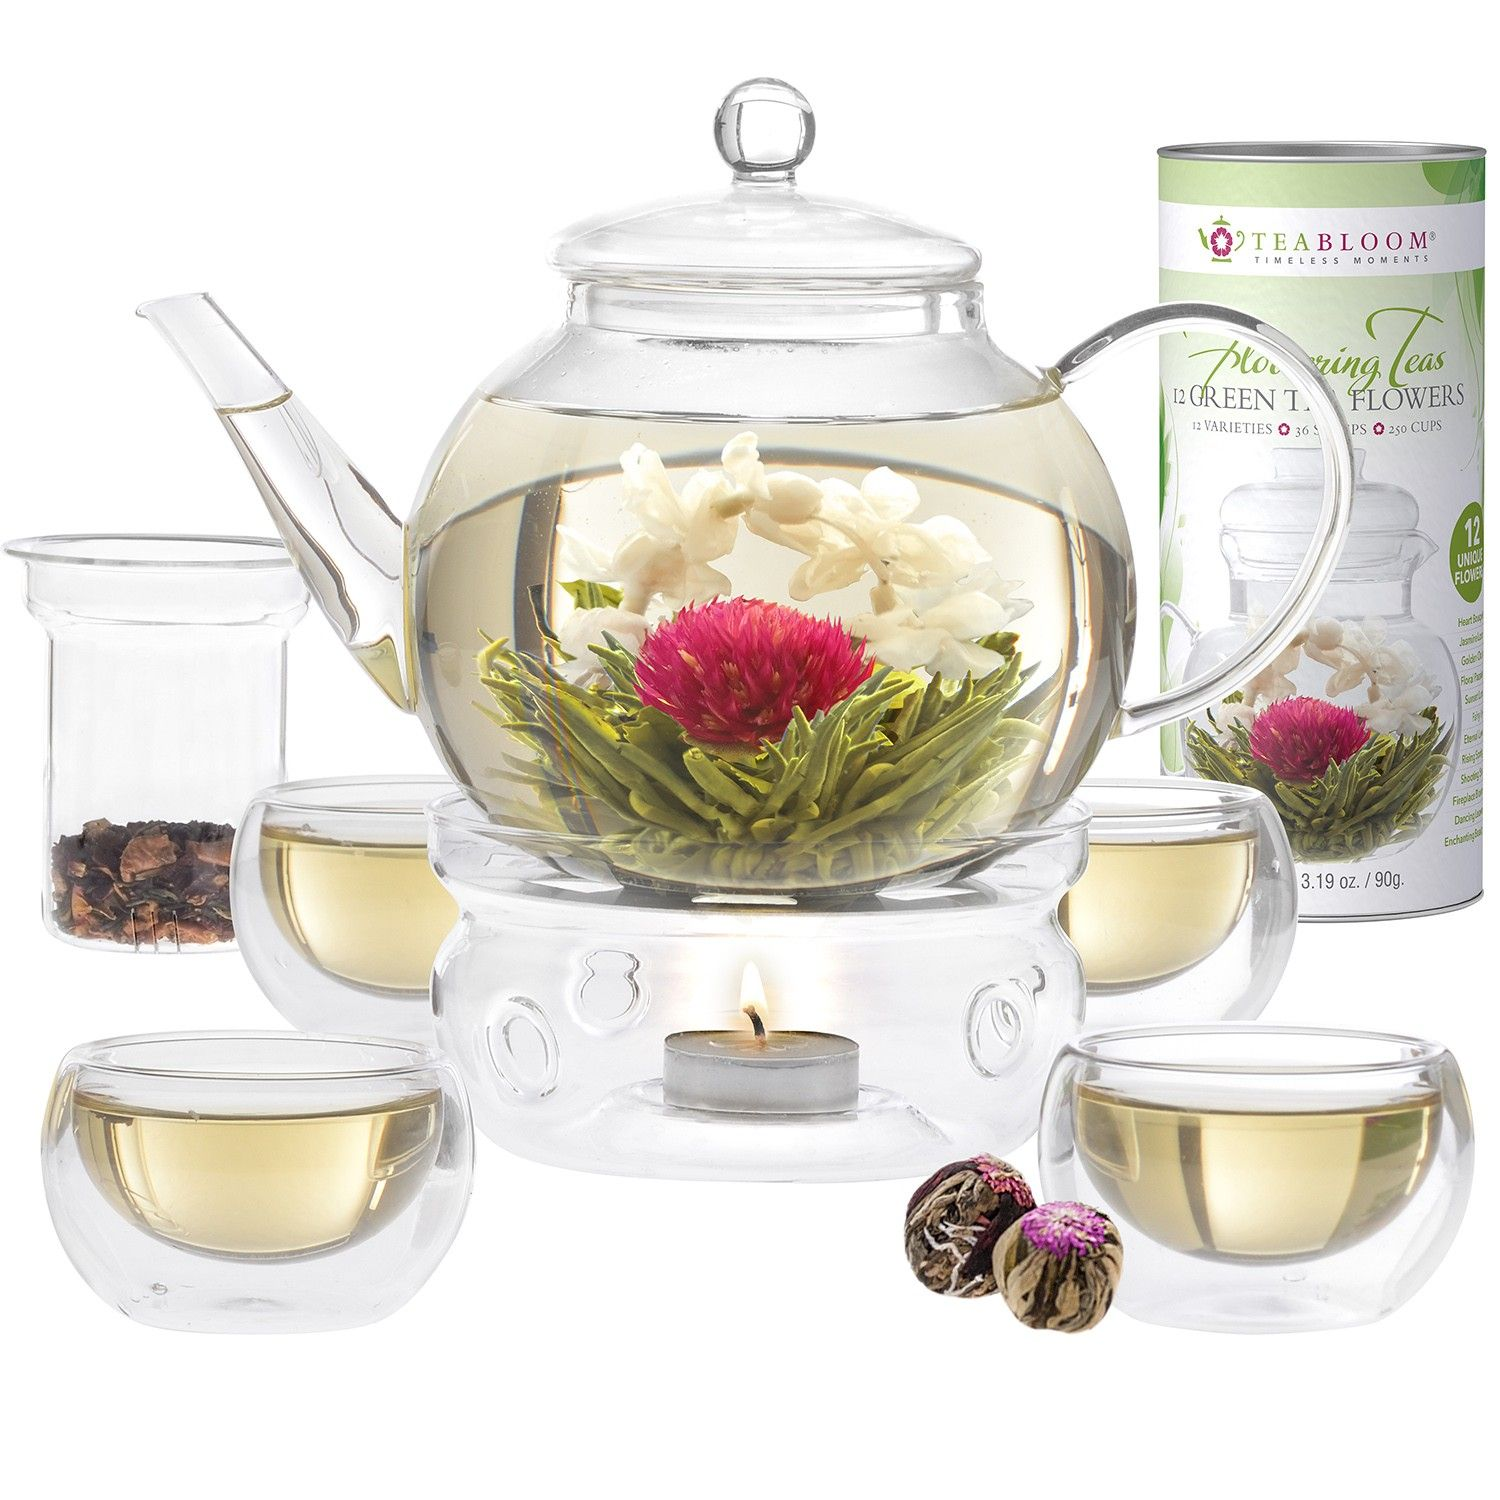 Celebration Blooming Tea Gift Set Includes A Borosilicate Glass